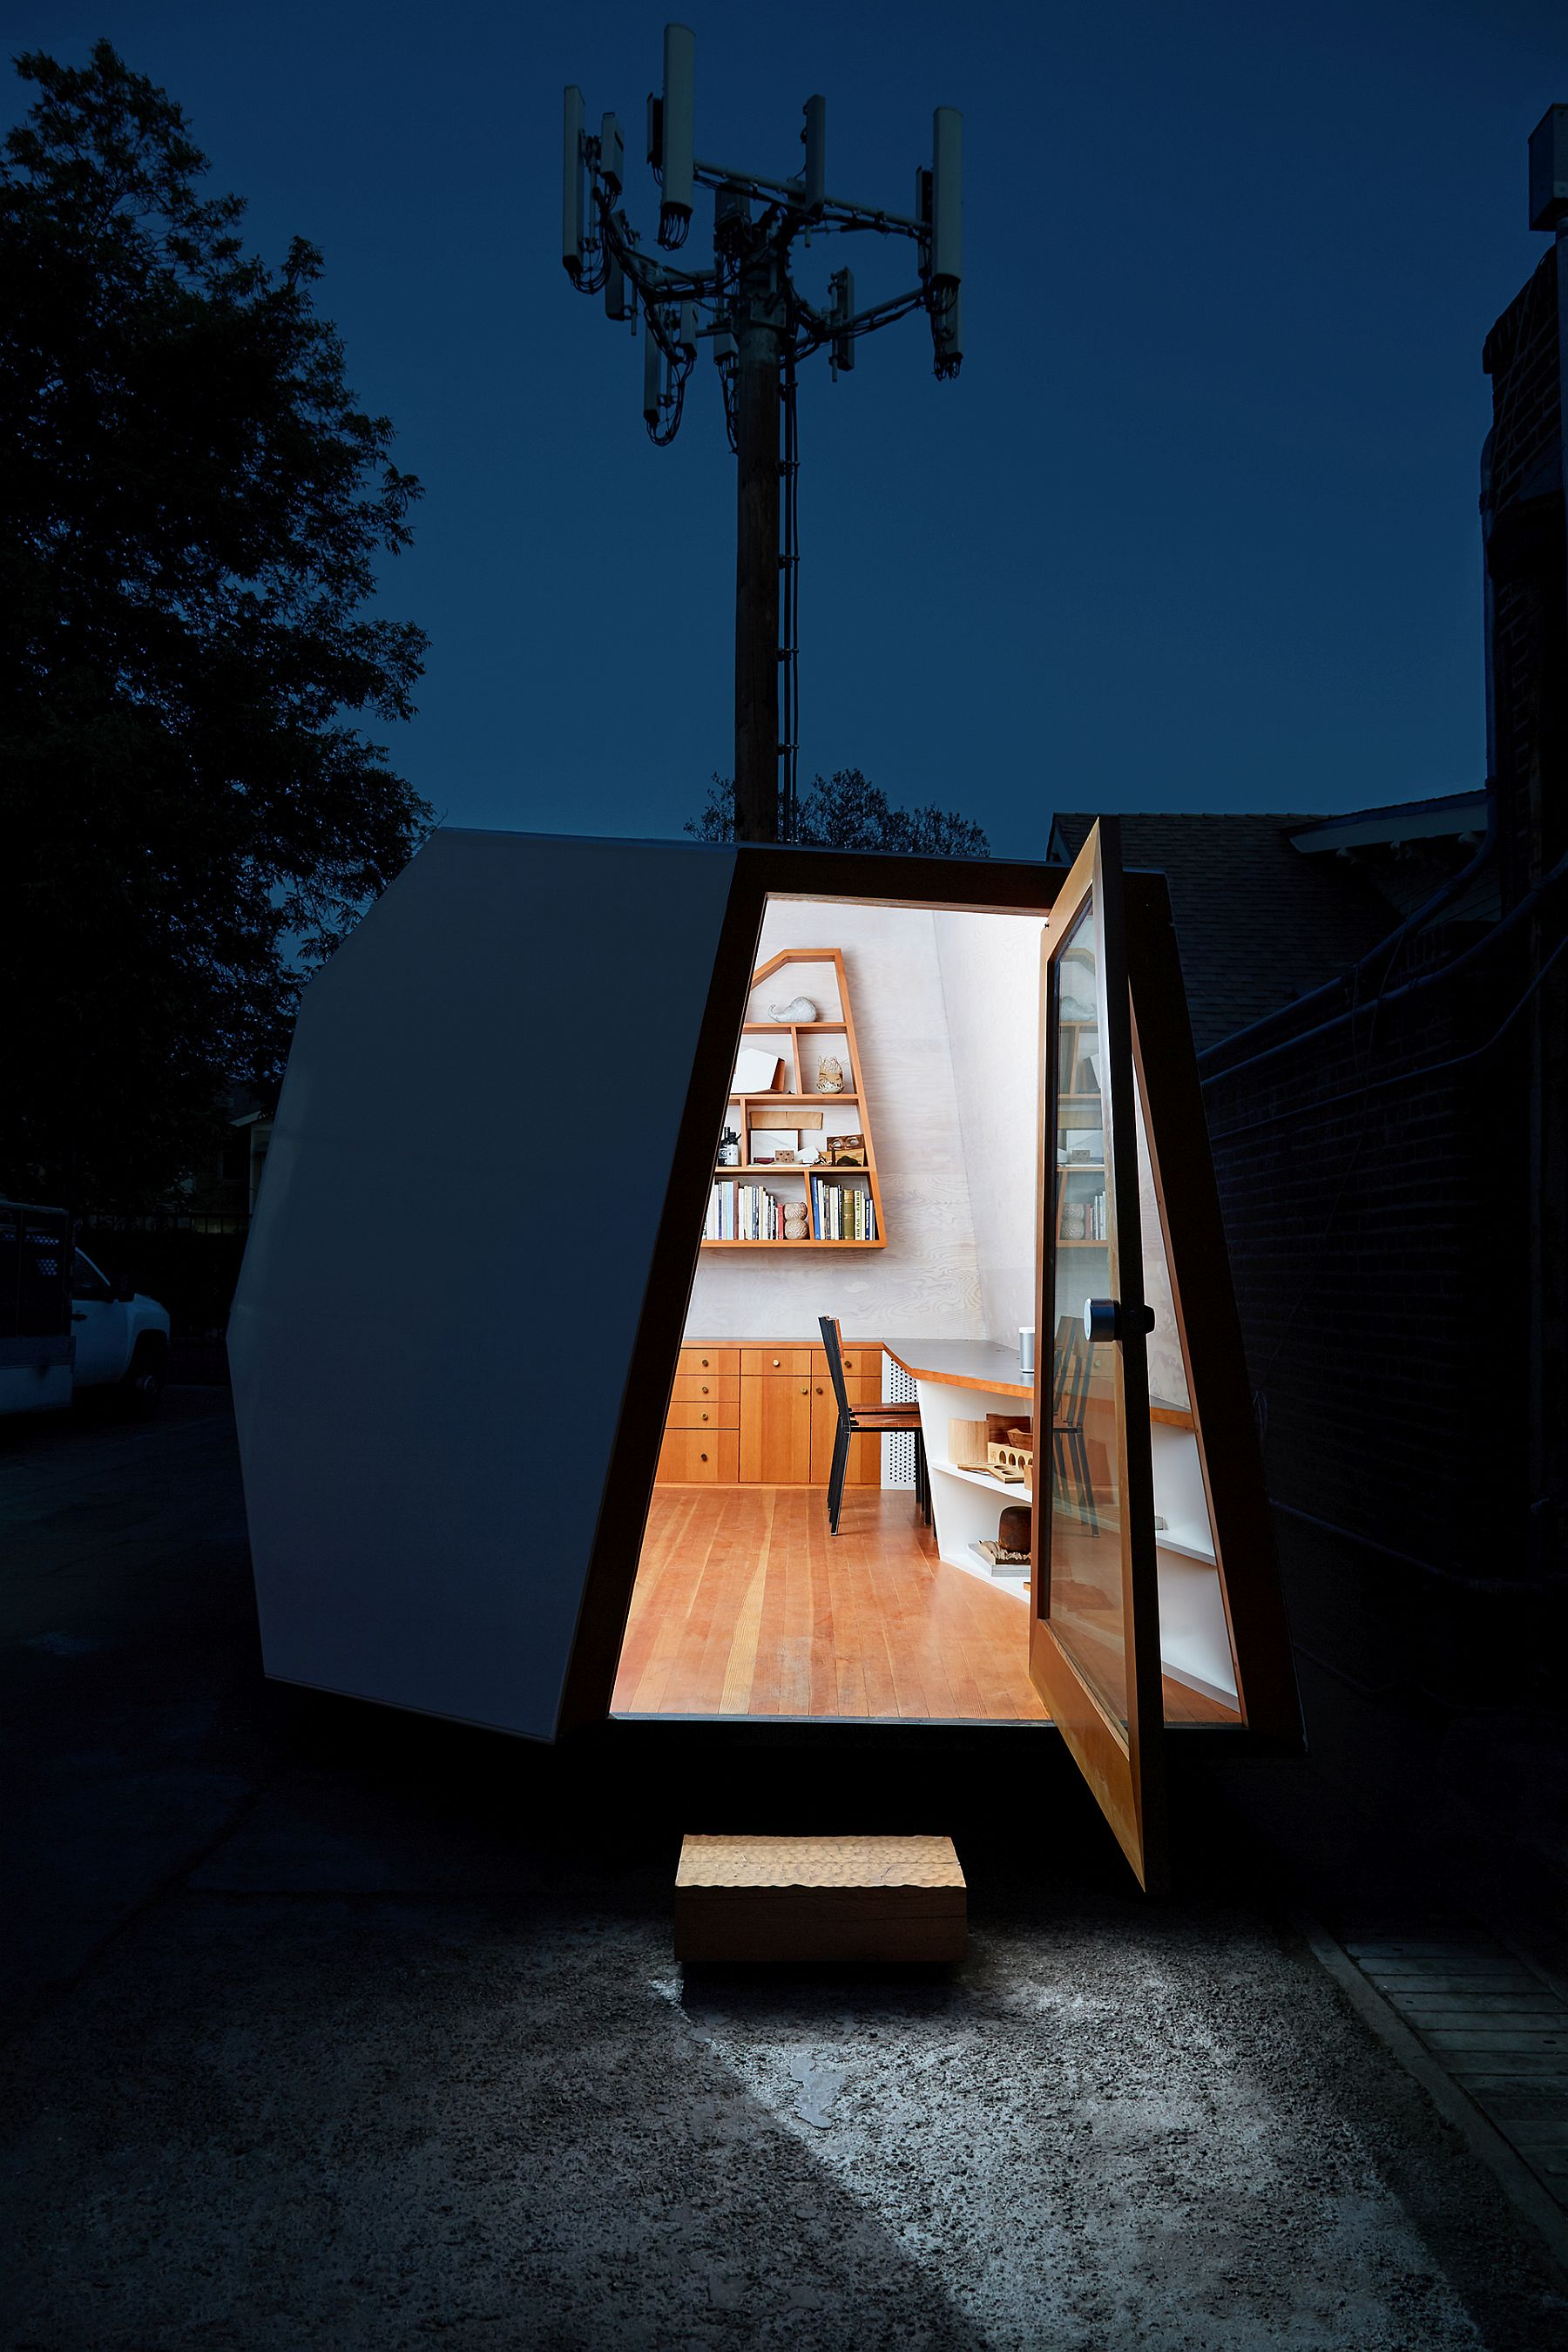 Space-savvy and stylish design of the tiny Lighthouse